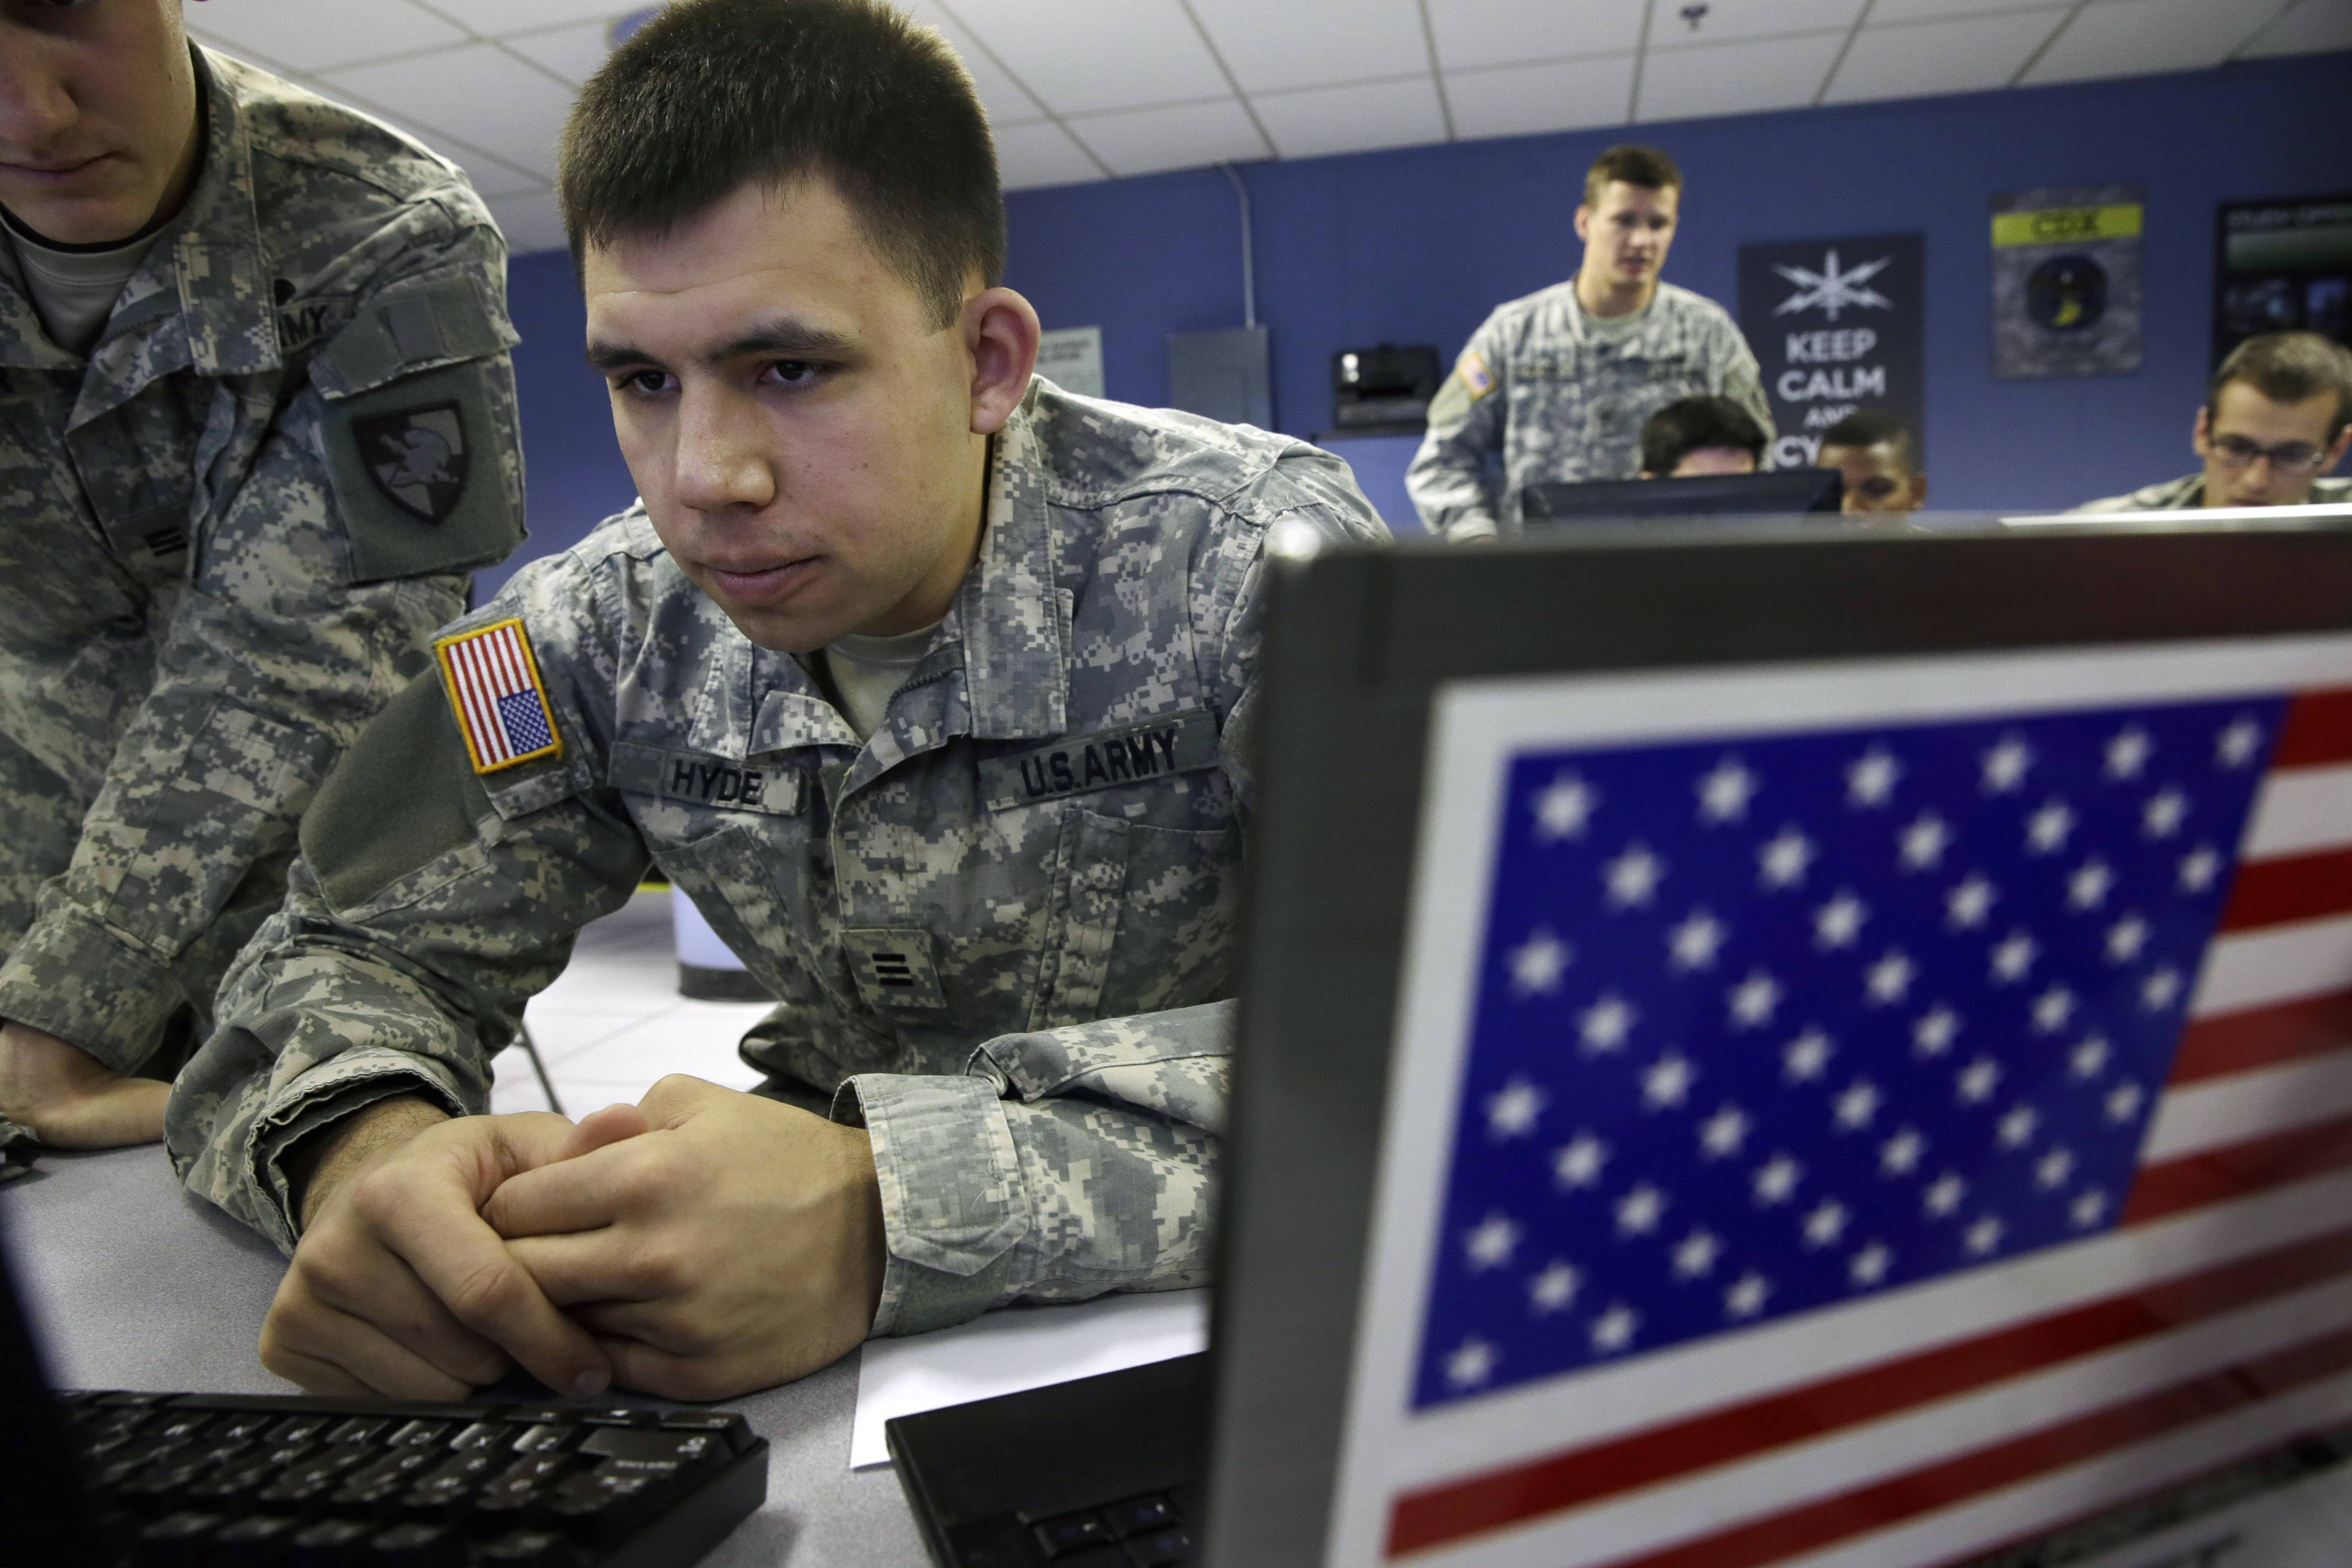 United States Military Academy cadet Dylan Hyde watches data on a computer at the Cyber Research Center at the United States Military Academy in West Point, N.Y.